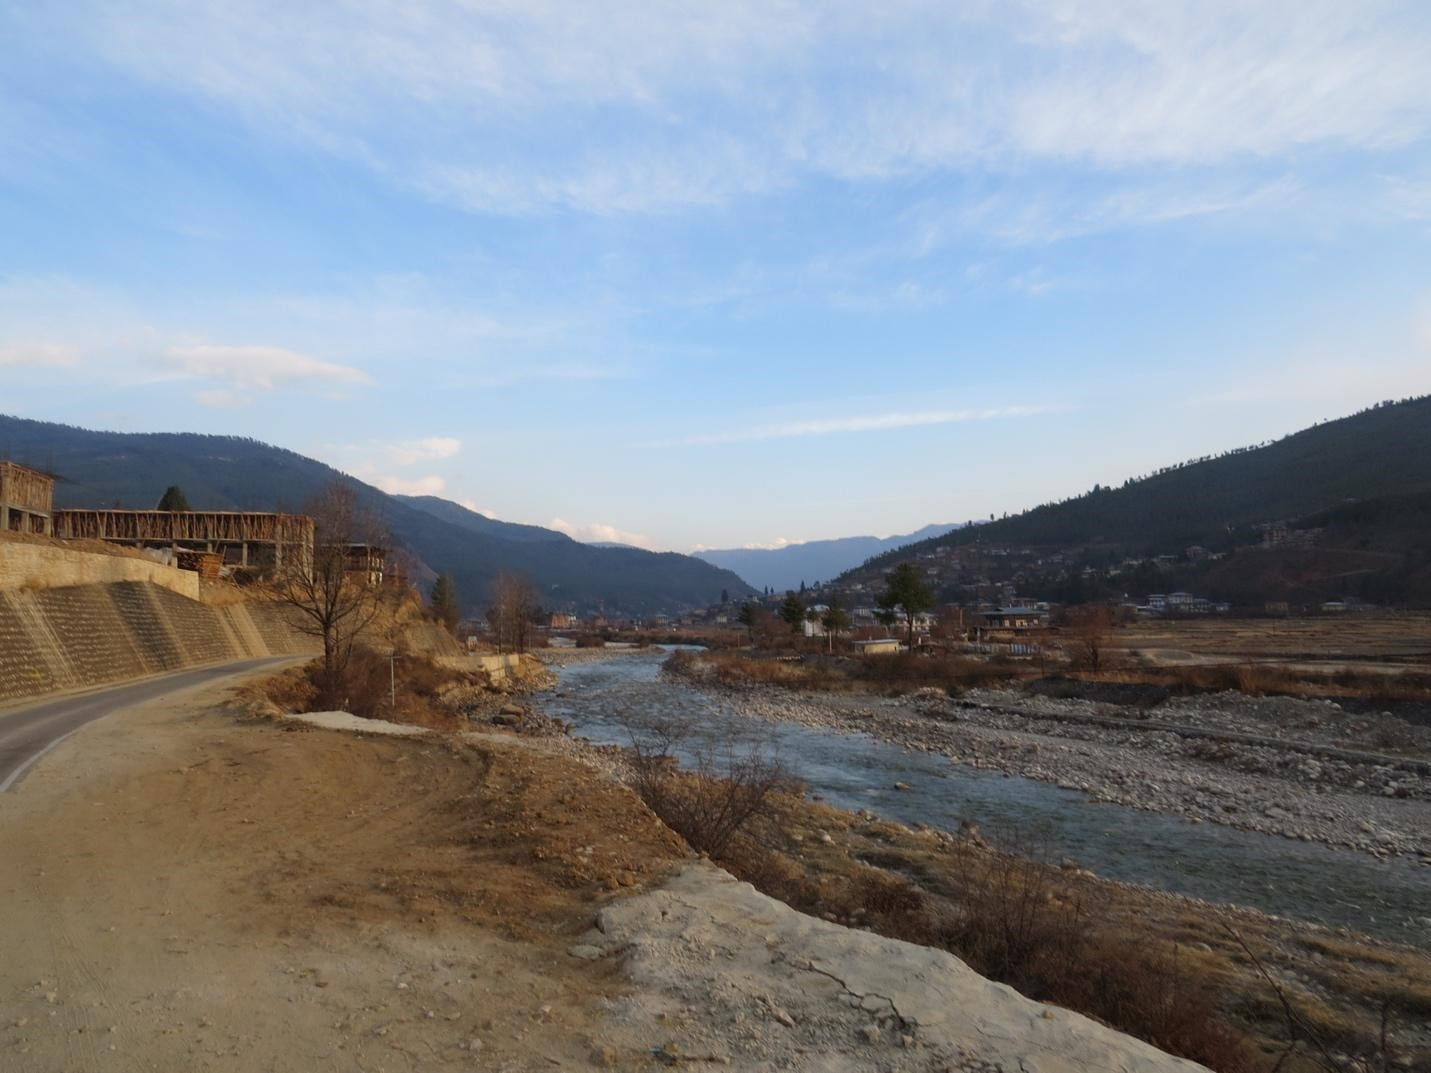 Landscape with river and blue sky in Bhutan